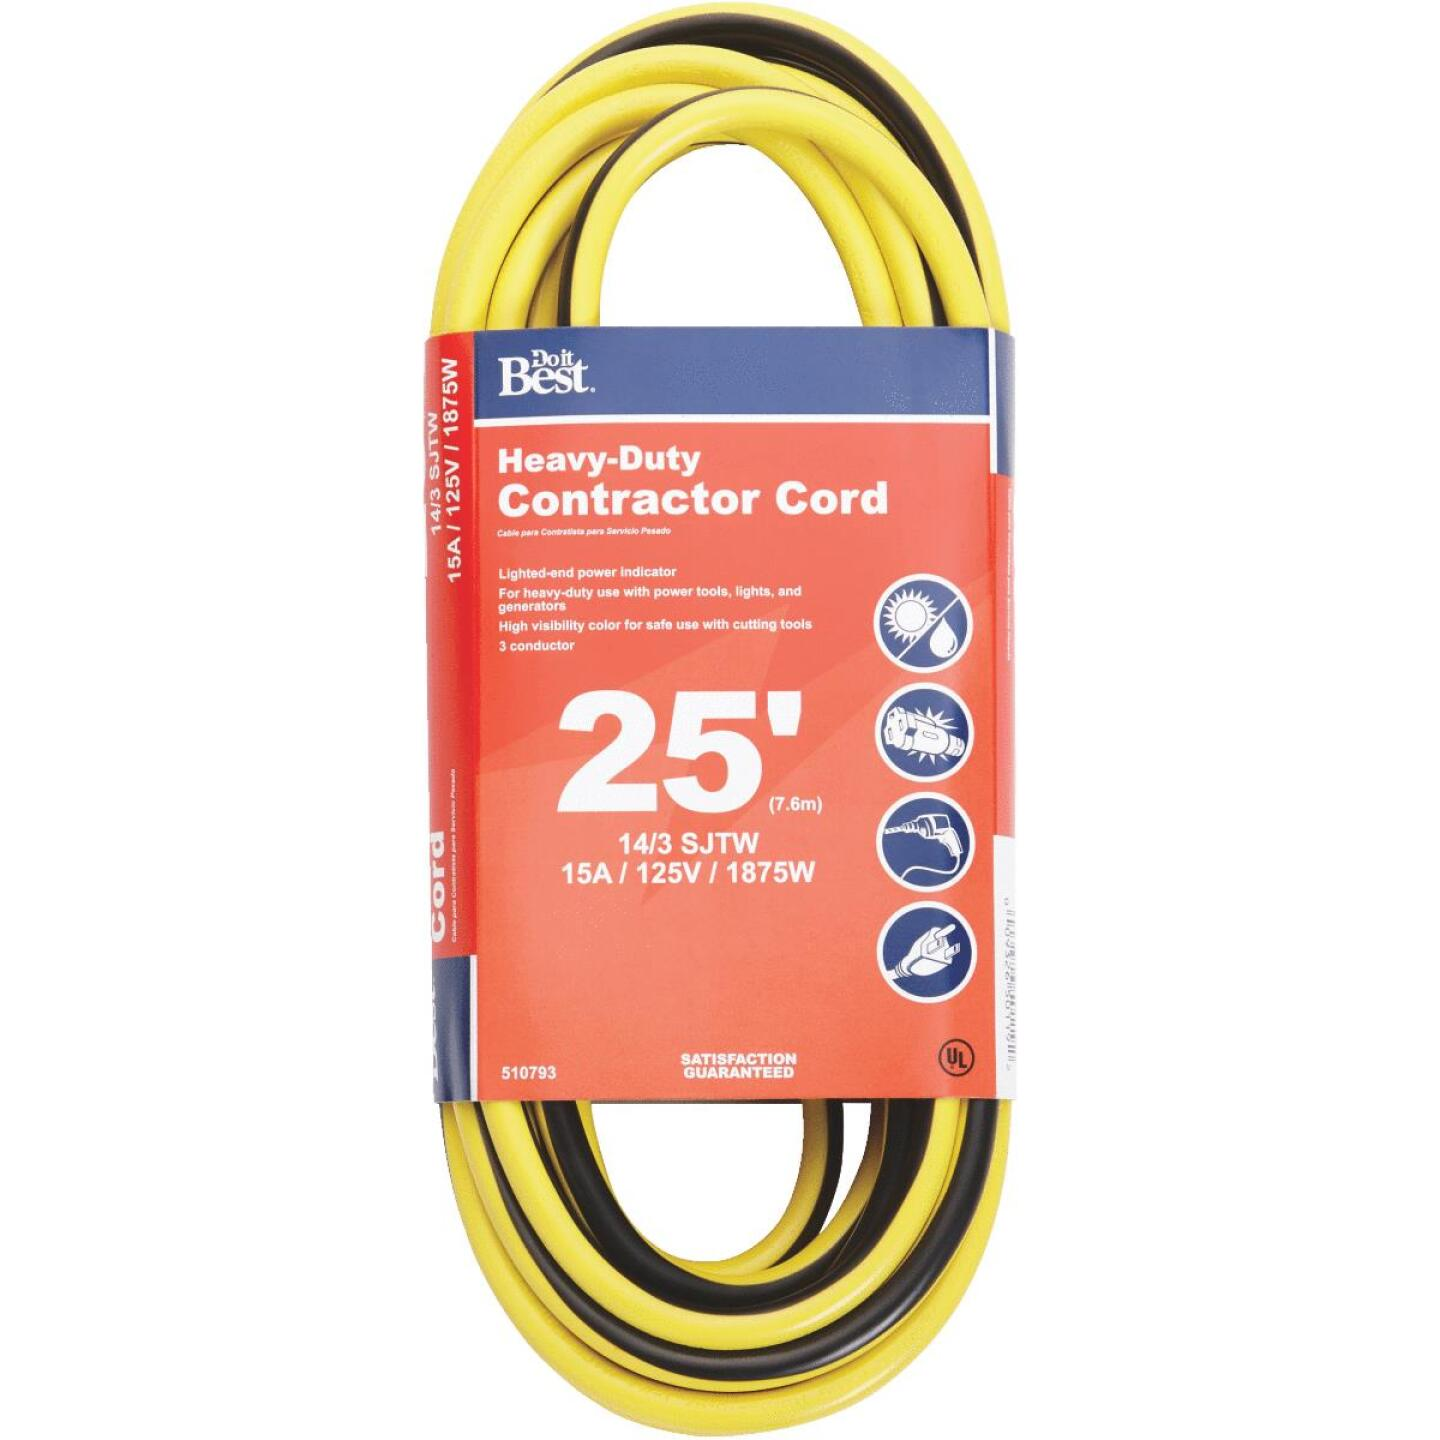 Do it Best 25 Ft. 14/3 Heavy-Duty Contractor Extension Cord Image 1